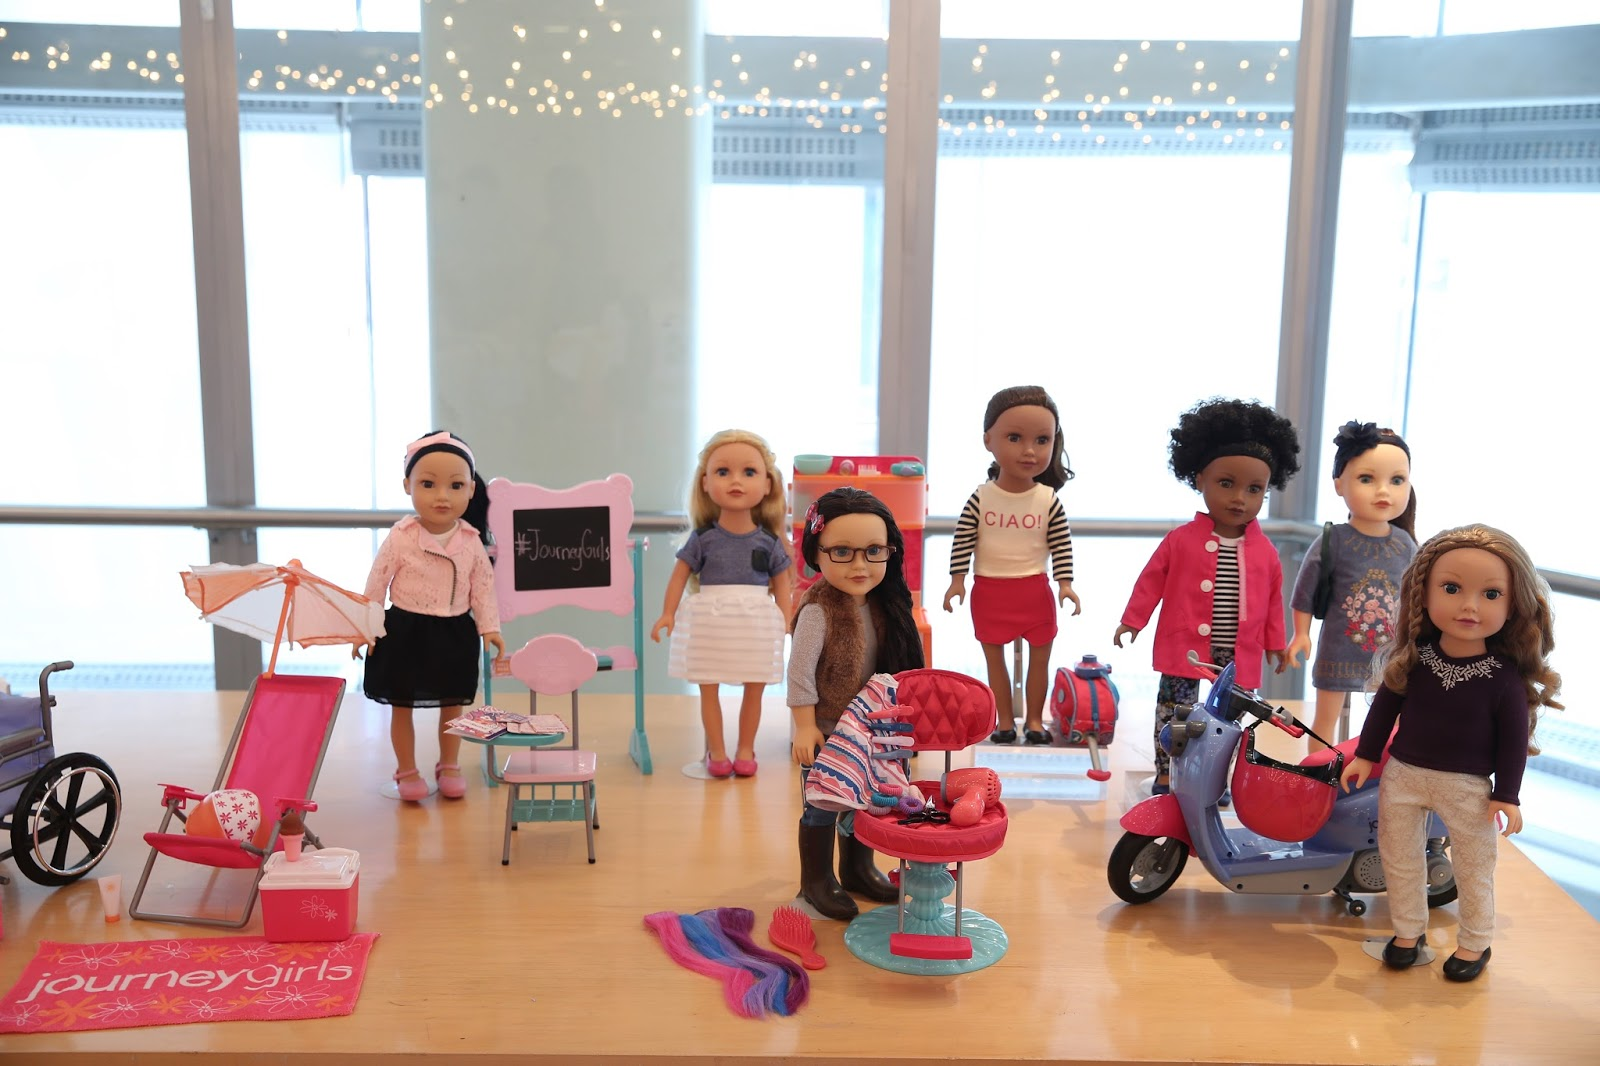 Toys R Us Journey Girls : Dellahs jubilation: celebrating the 5th anniversary of the toys r